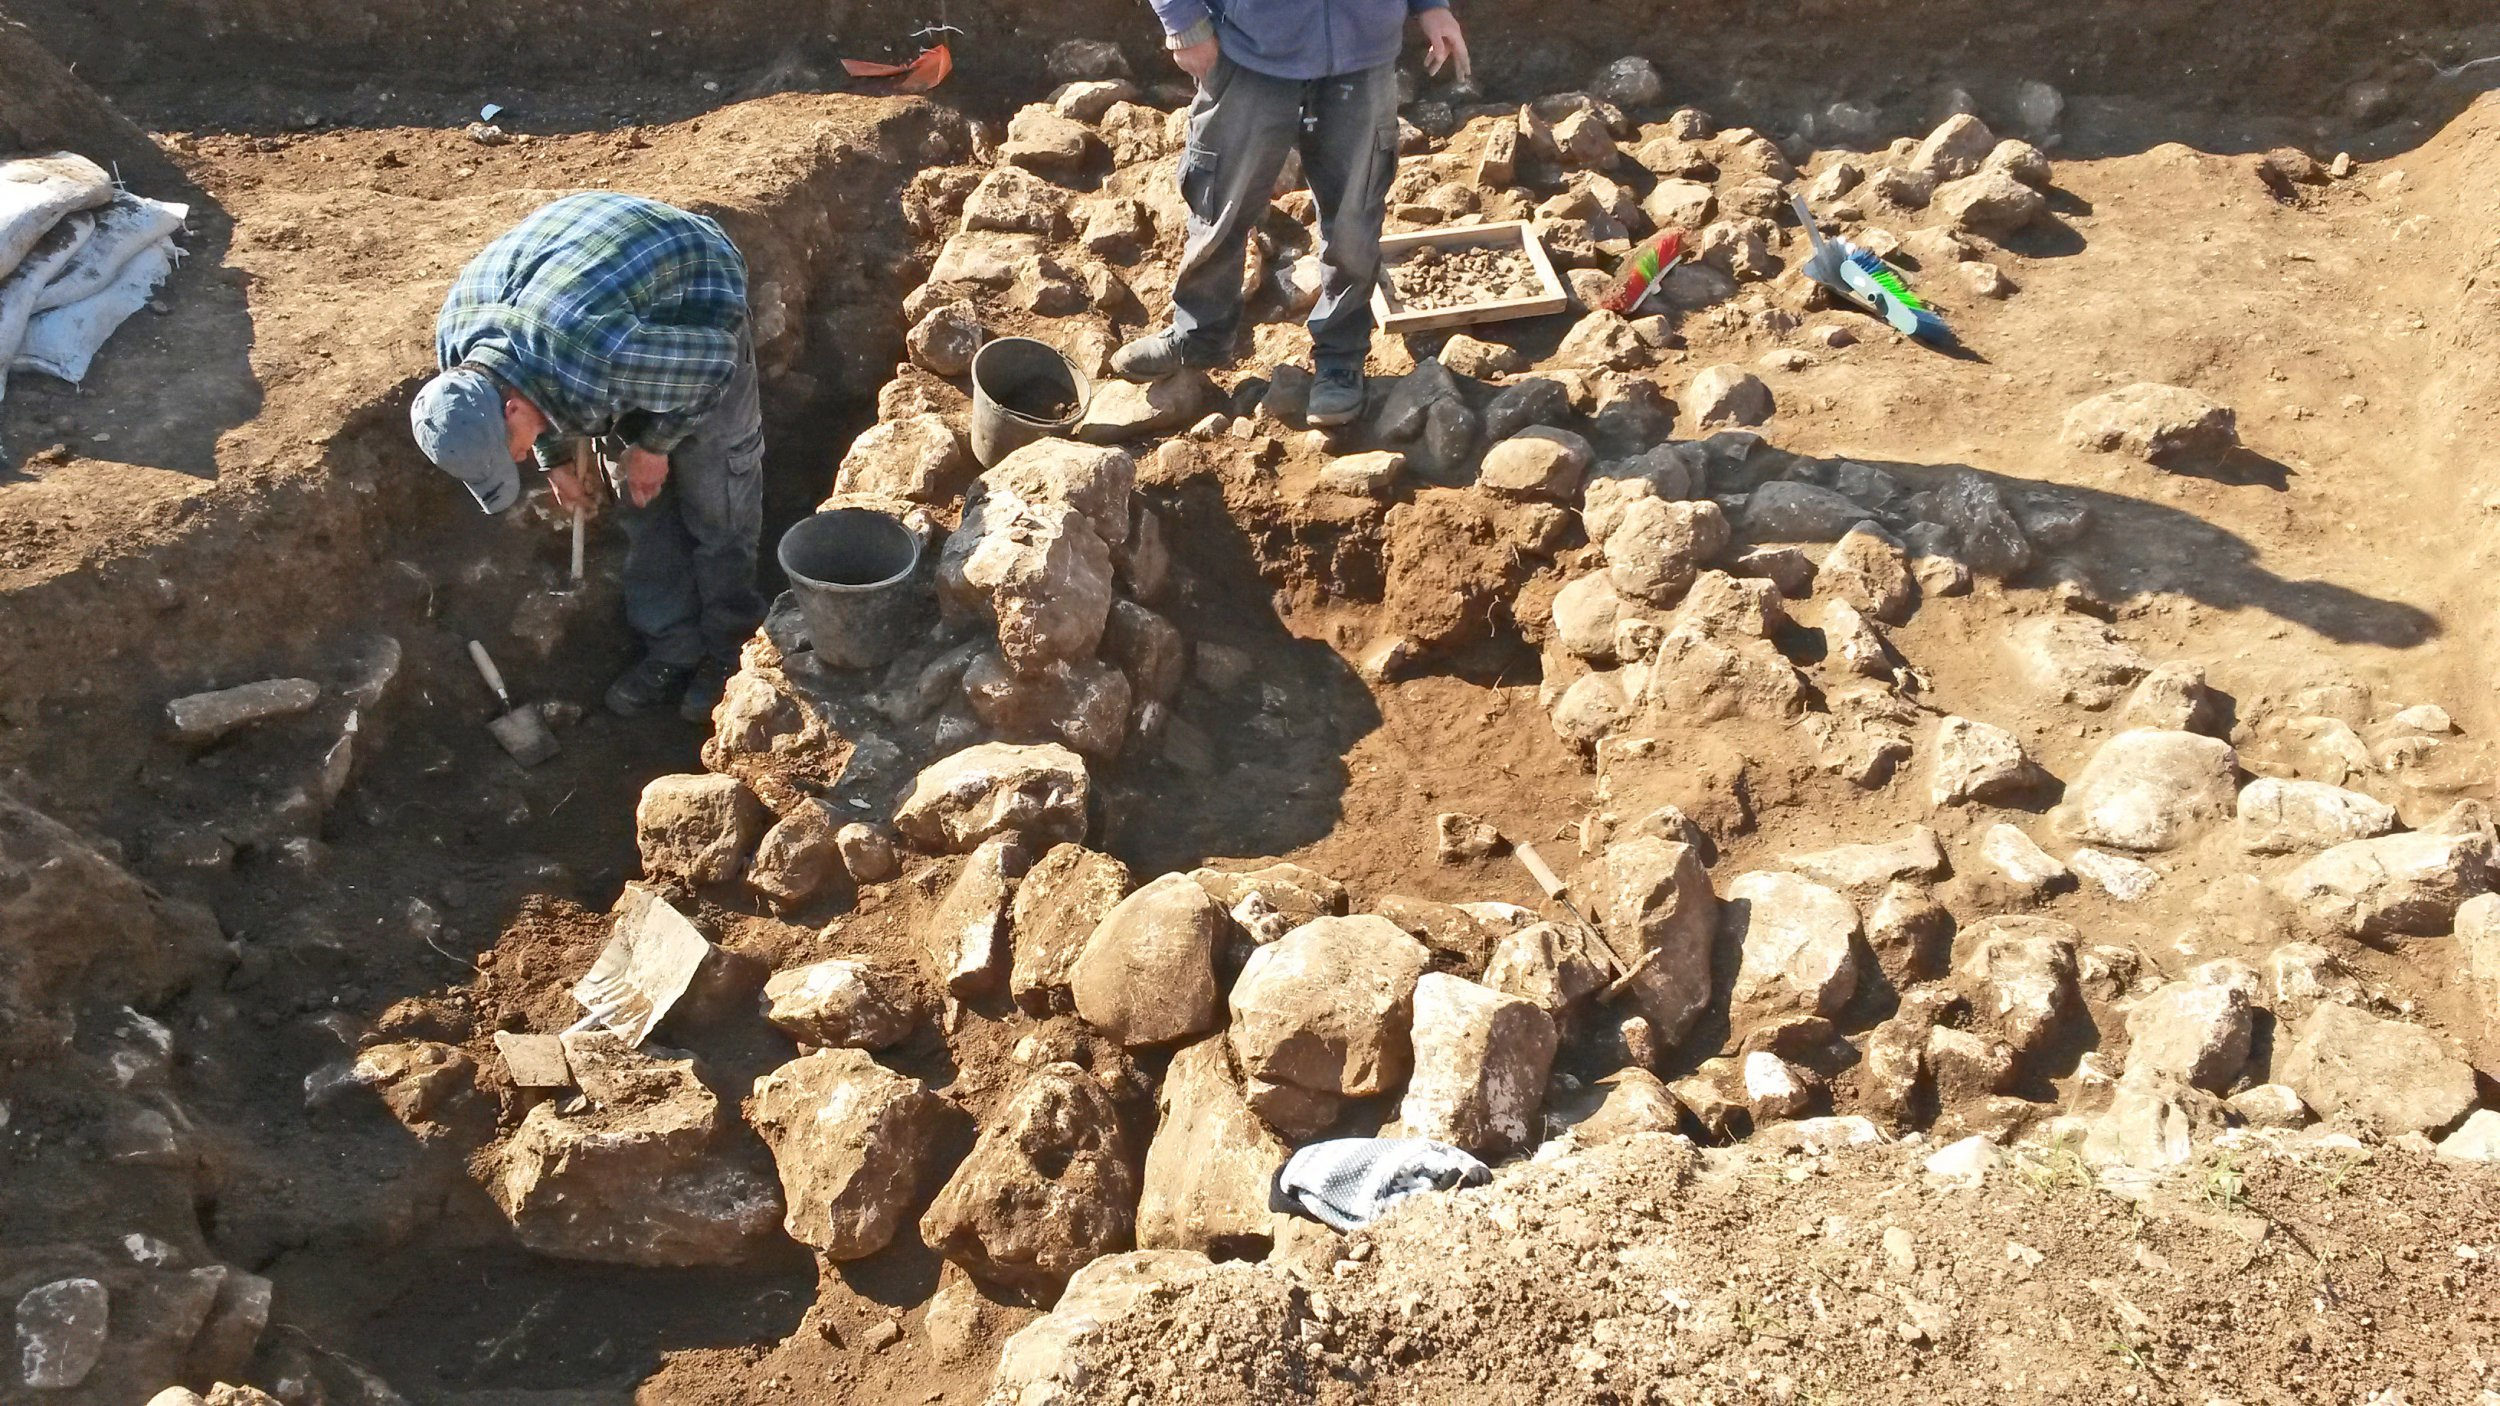 Jerusalem Town Archaeology Artefacts Israel Middle East